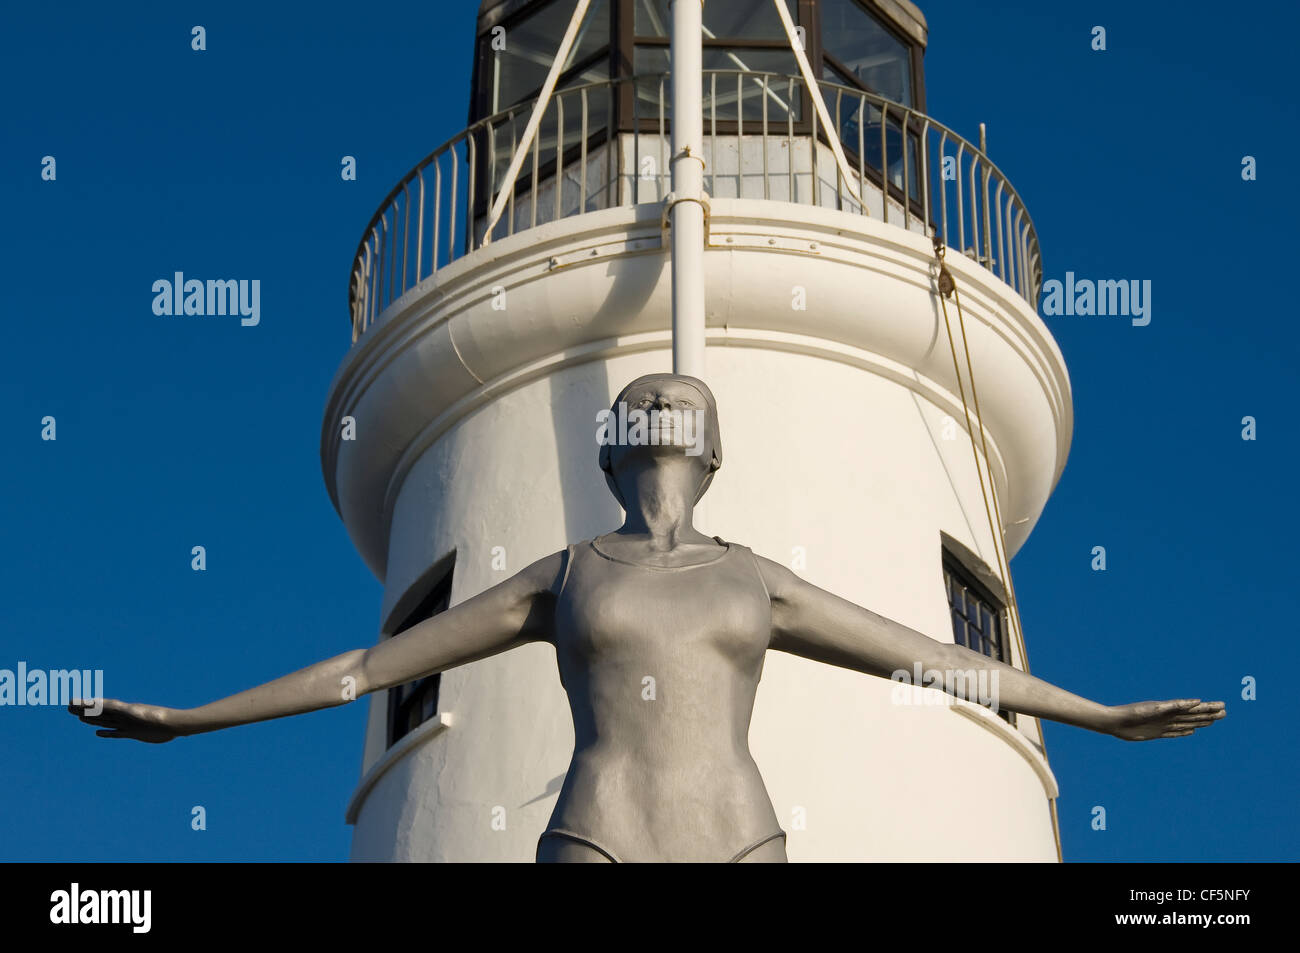 The Diving Belle sculpture representing Scarborough of the present by Craig Knowles next to Scarborough Lighthouse - Stock Image